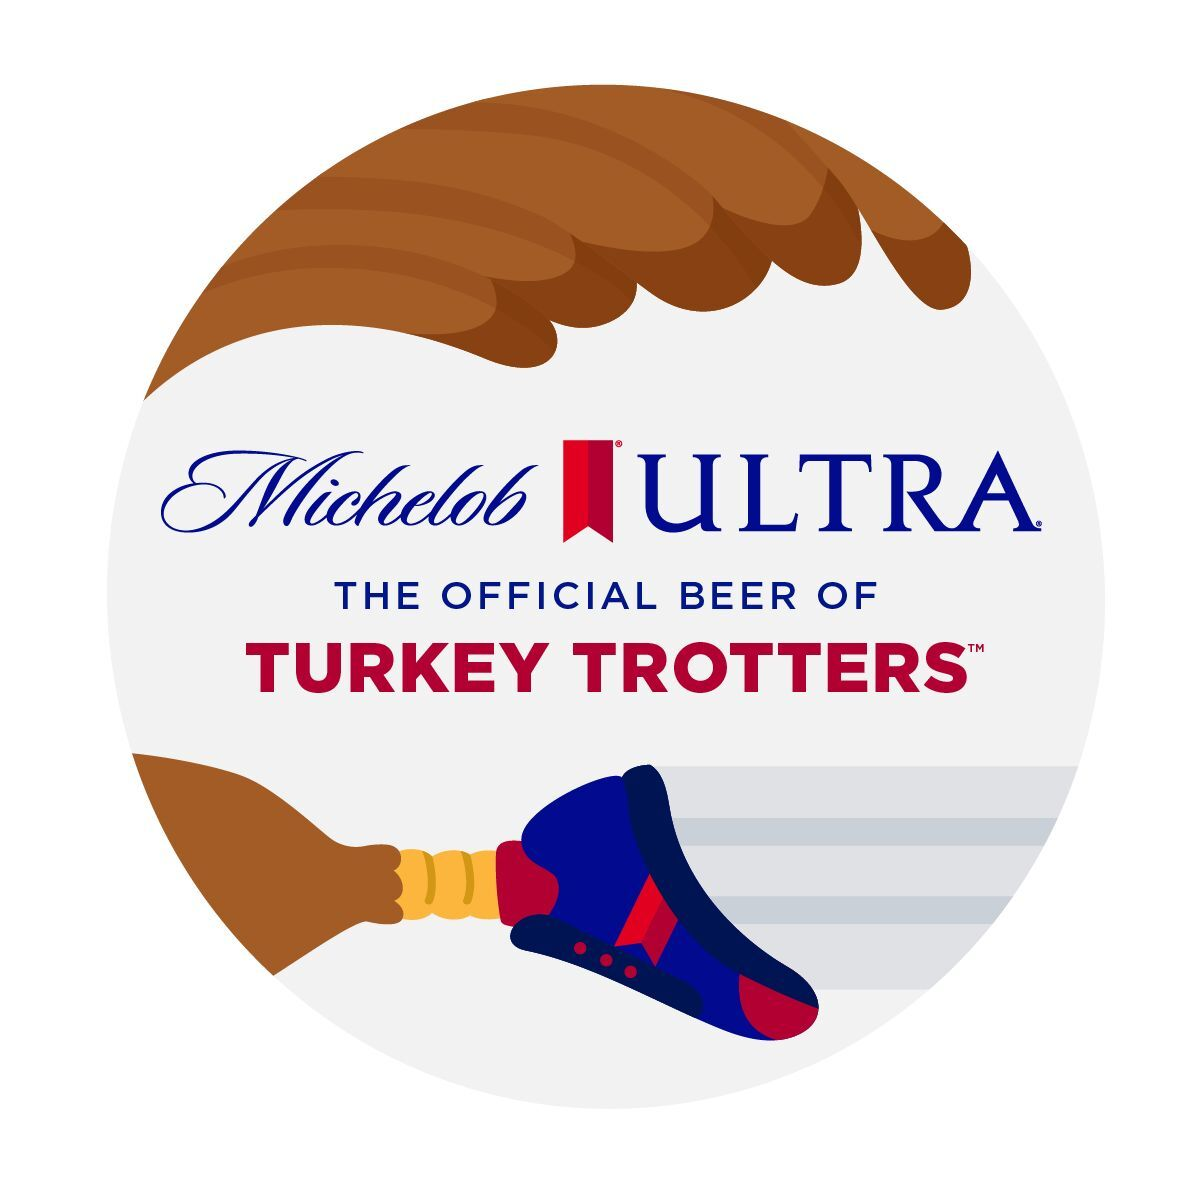 Will you join Turkey Trotters and trot for beer this Thanksgiving?